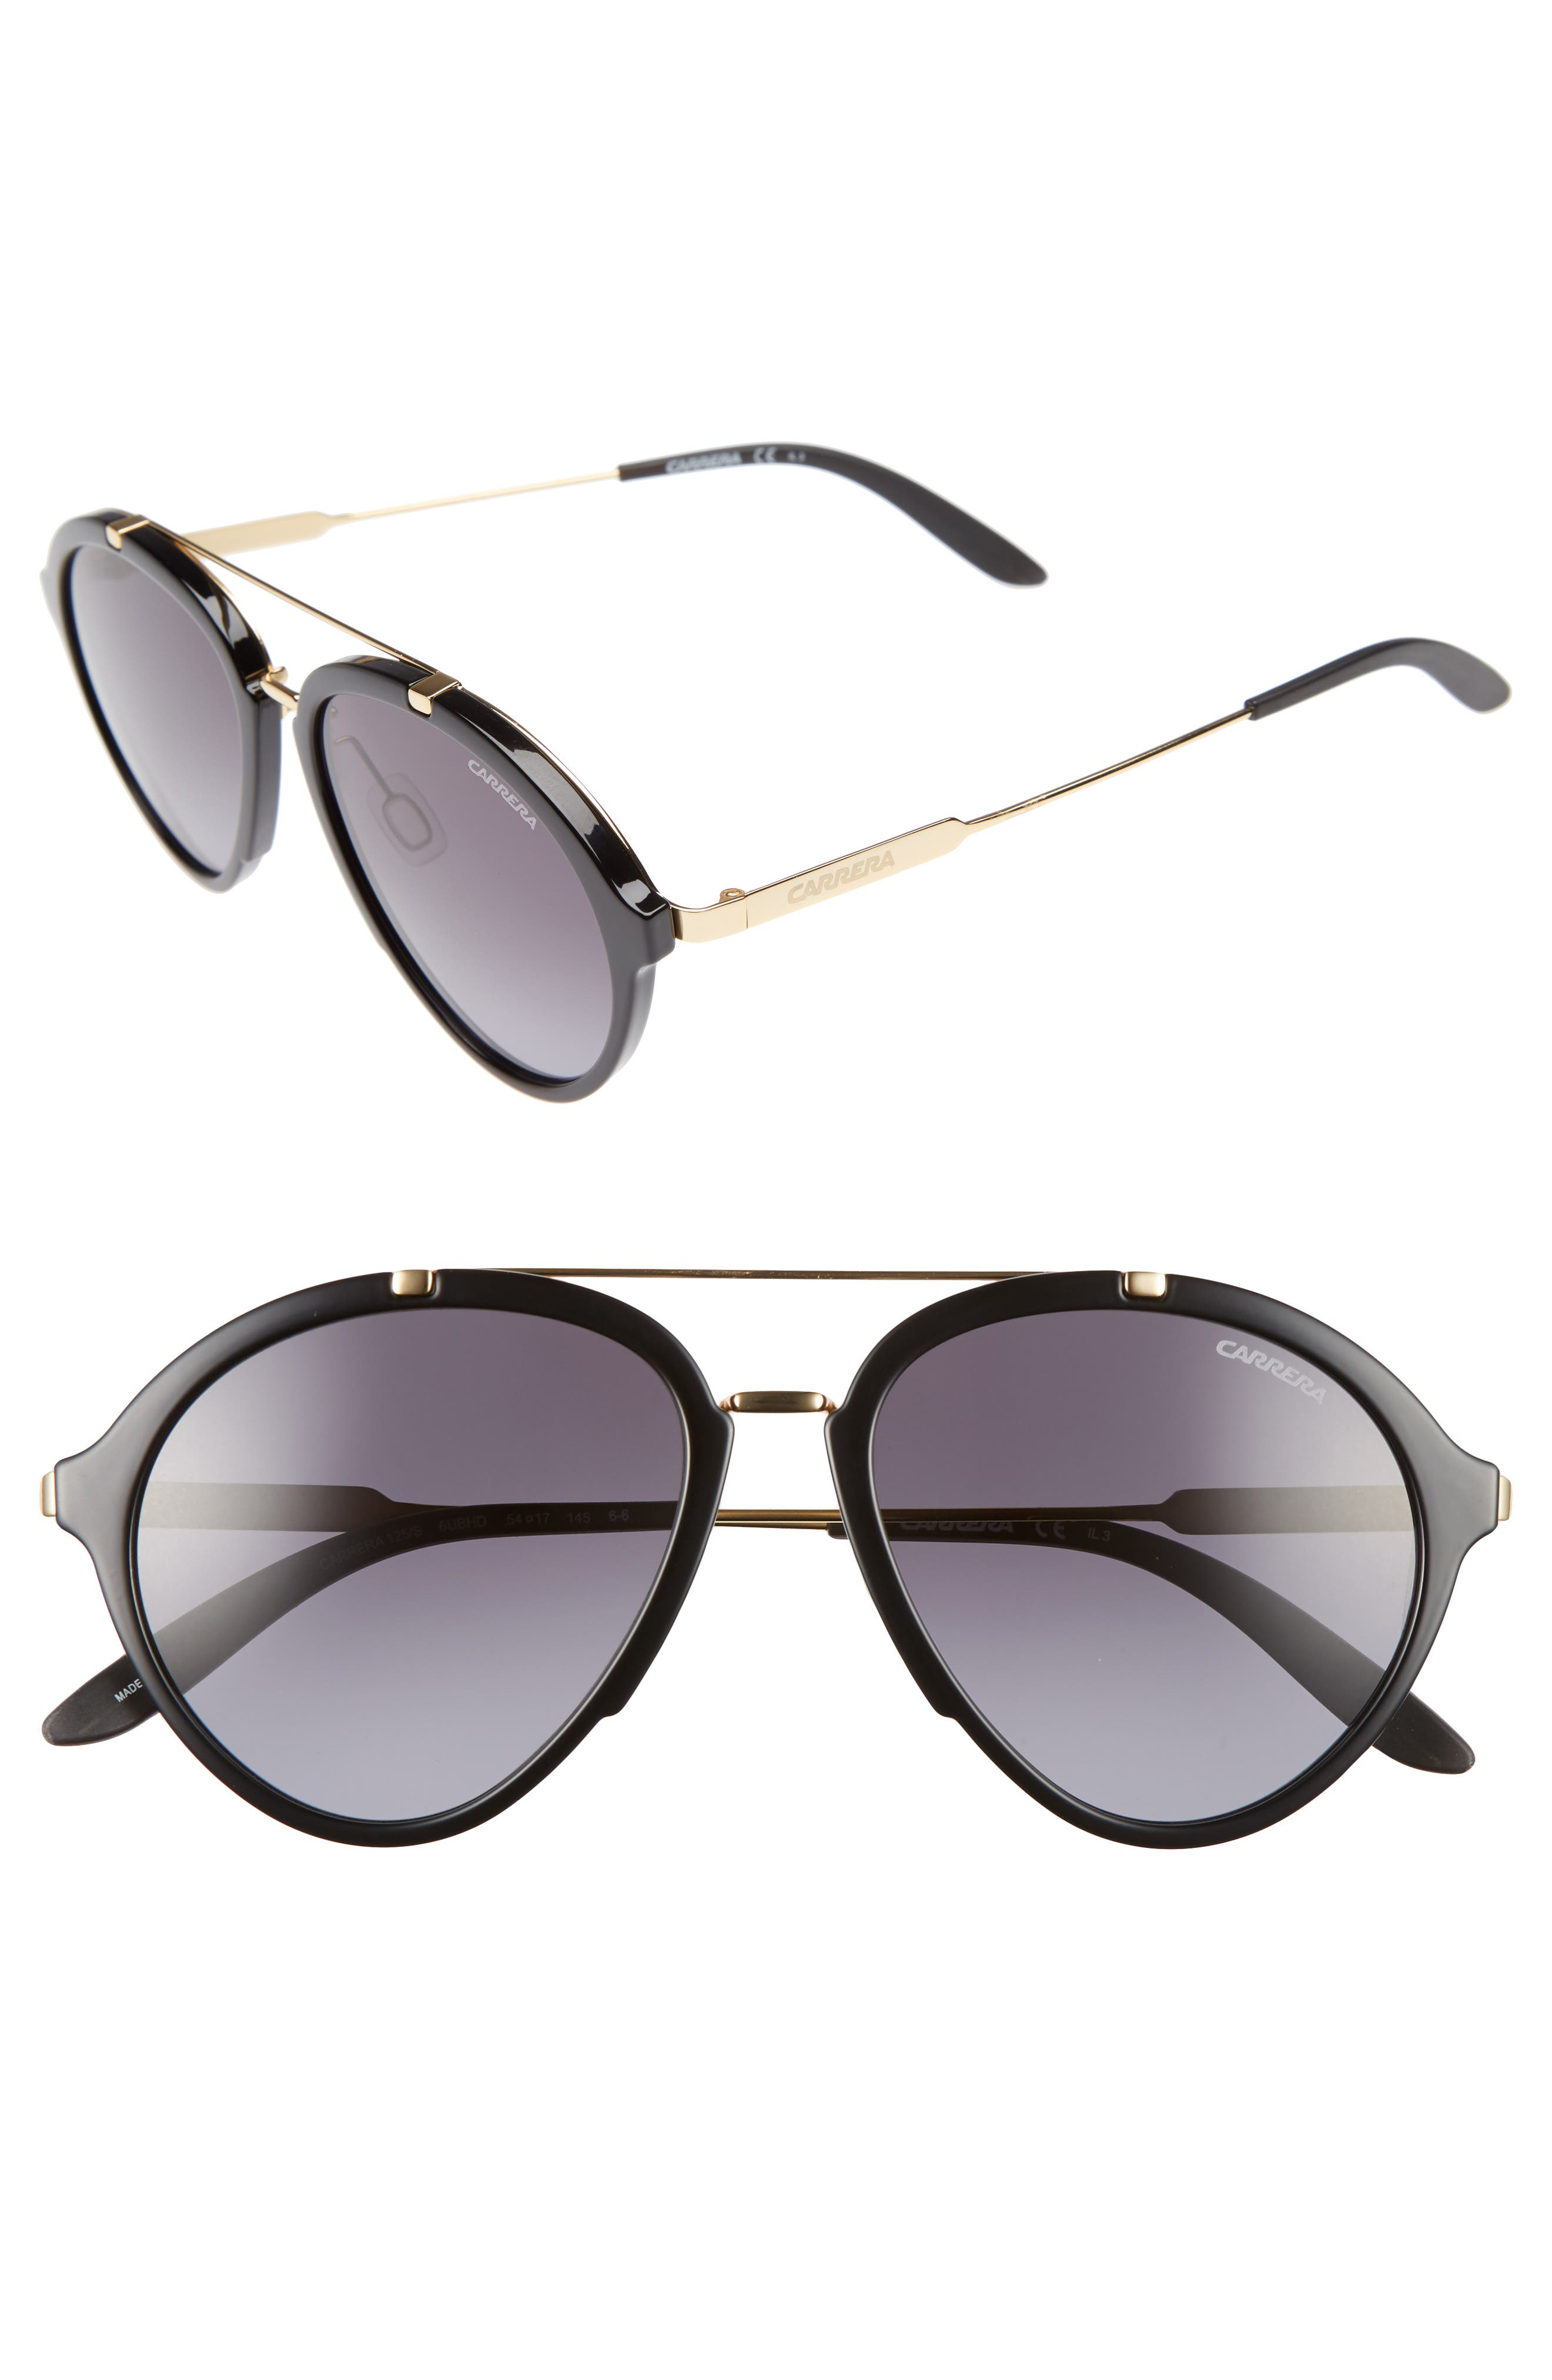 Alternate Image 1 Selected - Carrera Eyewear 54mm Gradient Aviator Sunglasses